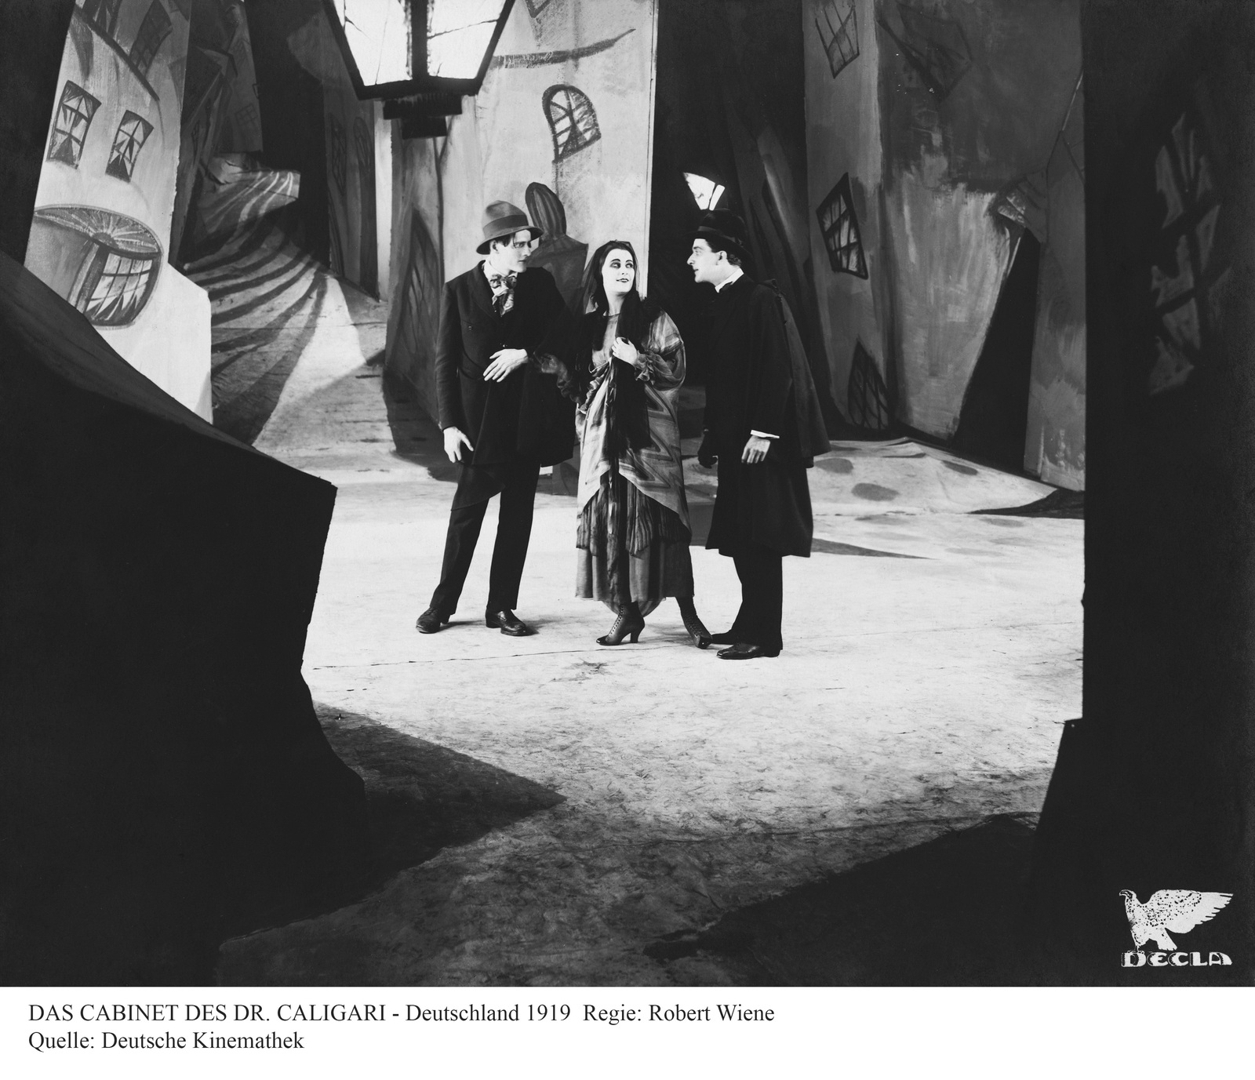 Das Cabinet des Dr. Caligari (The Cabinet of Dr. Caligari). 1920. Germany. image